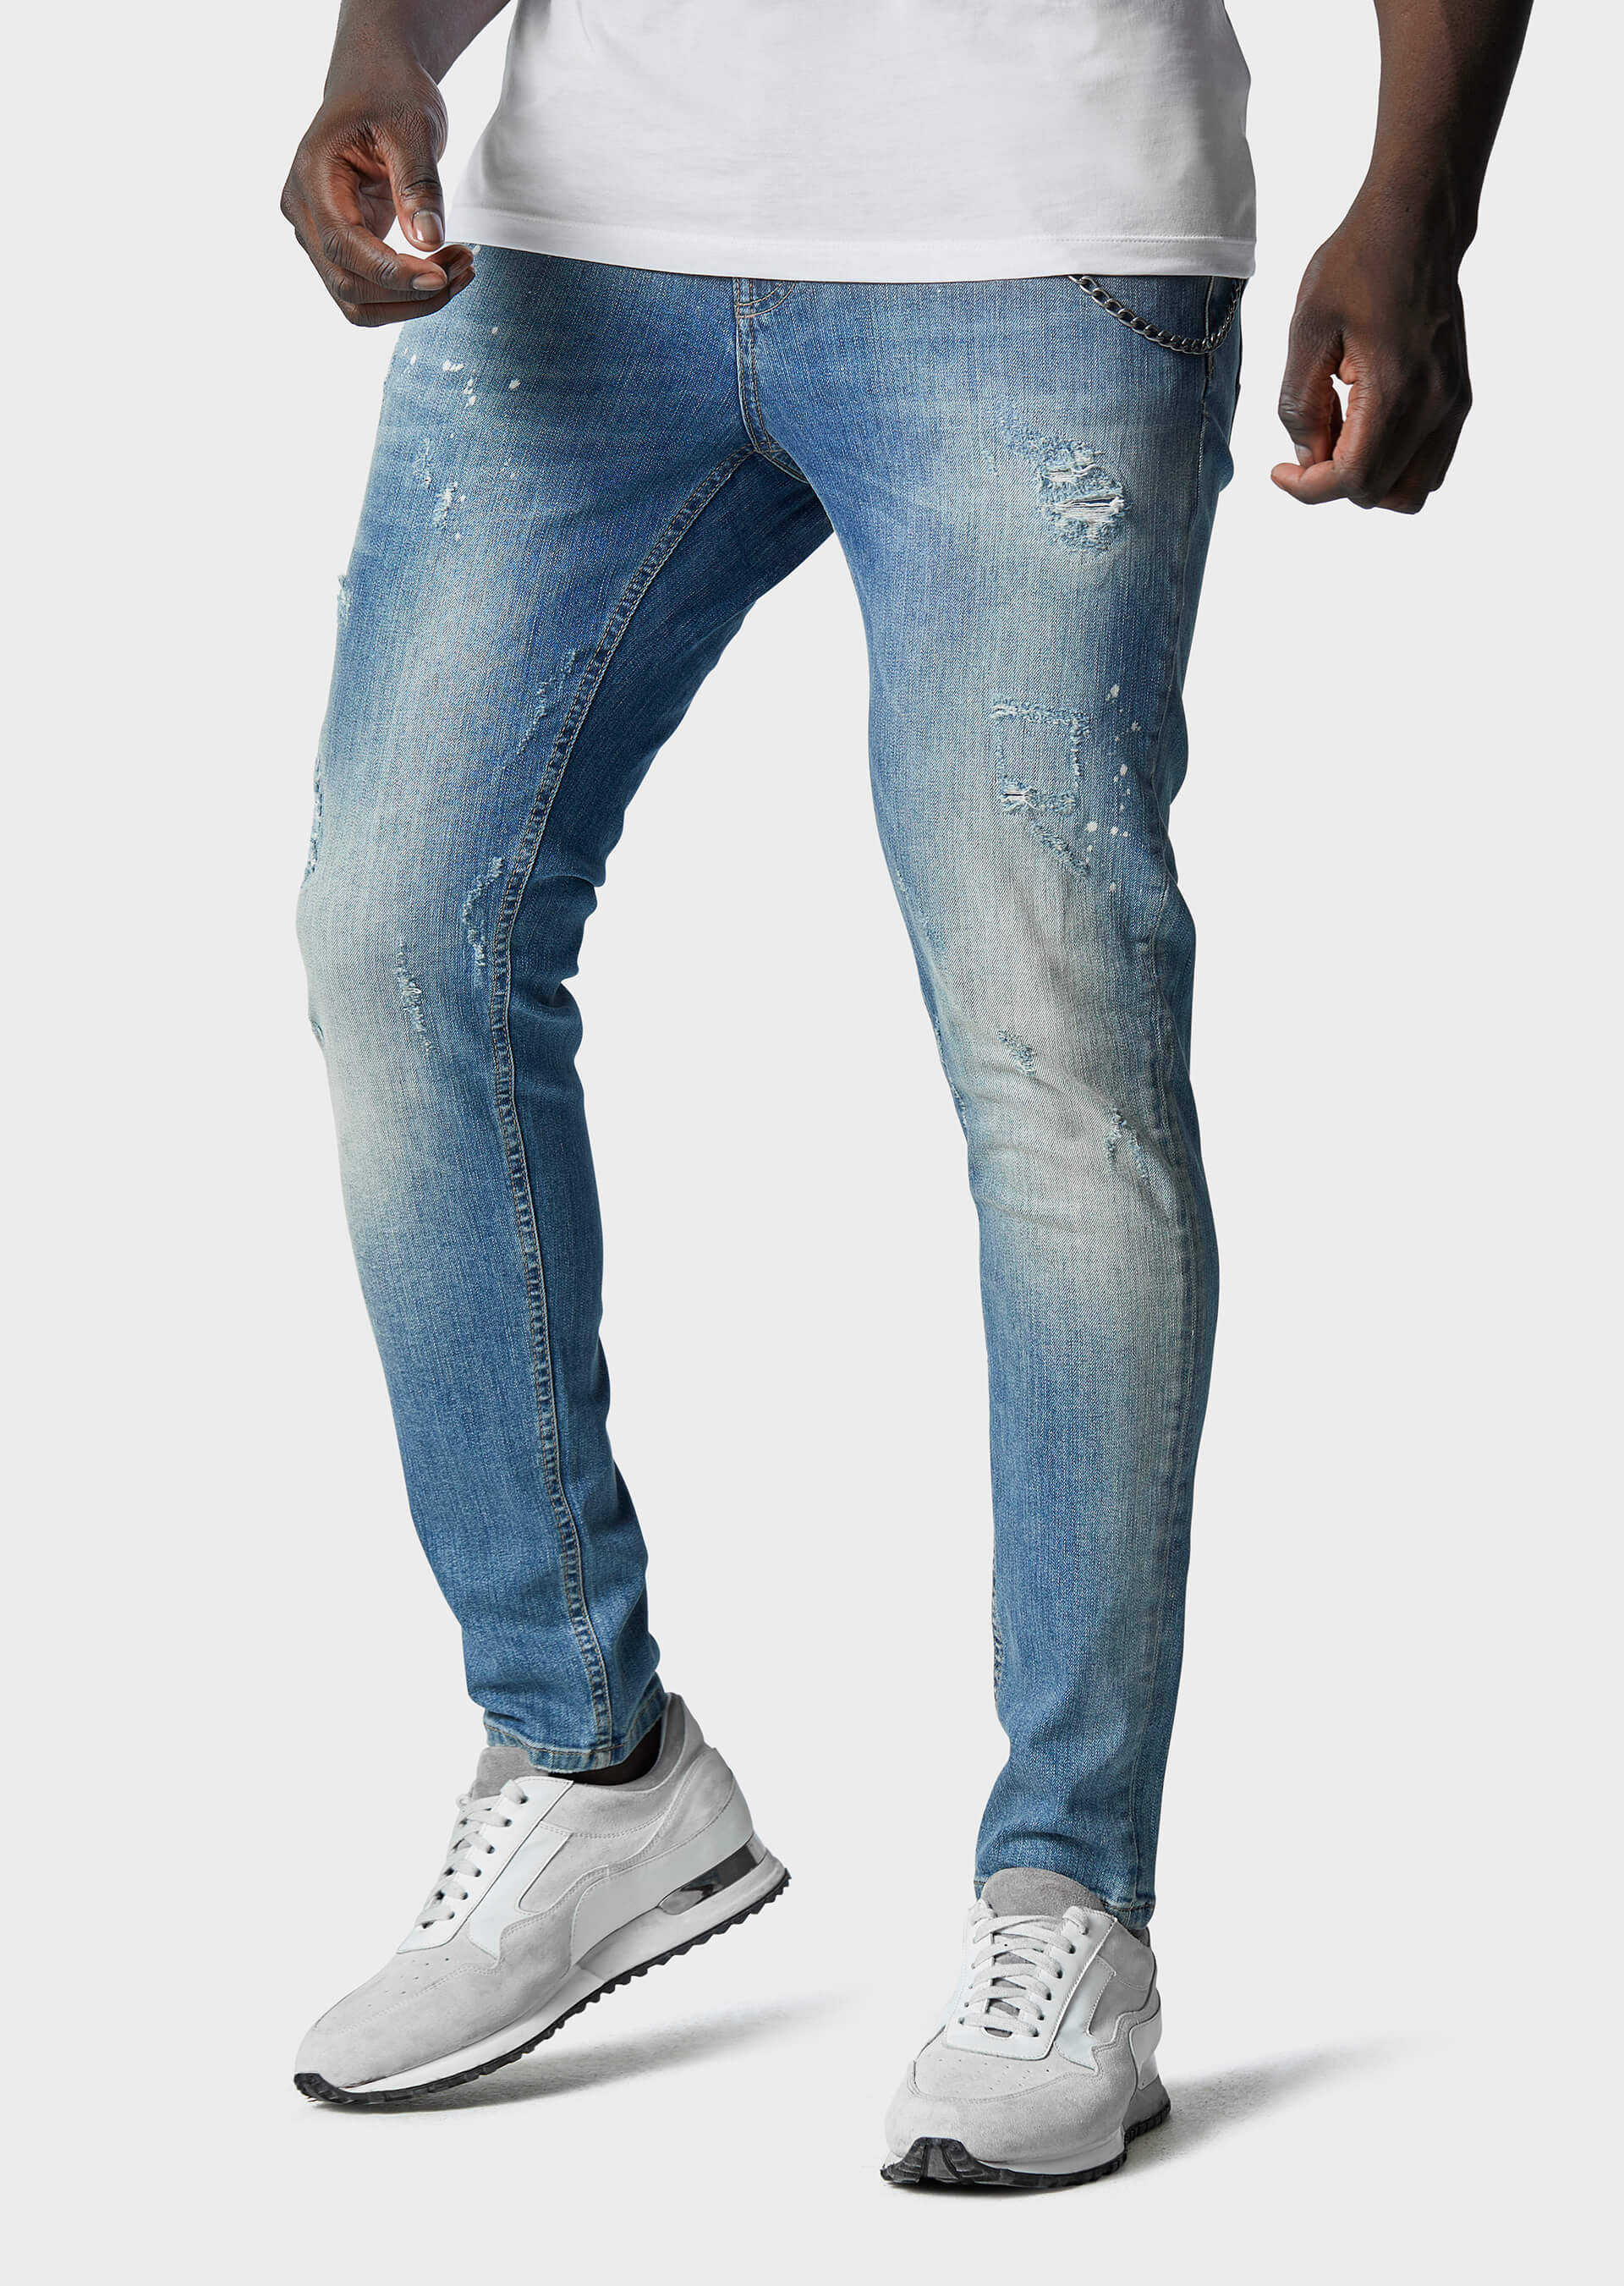 Moriarty COB 715 Slim Fit Jeans second_image